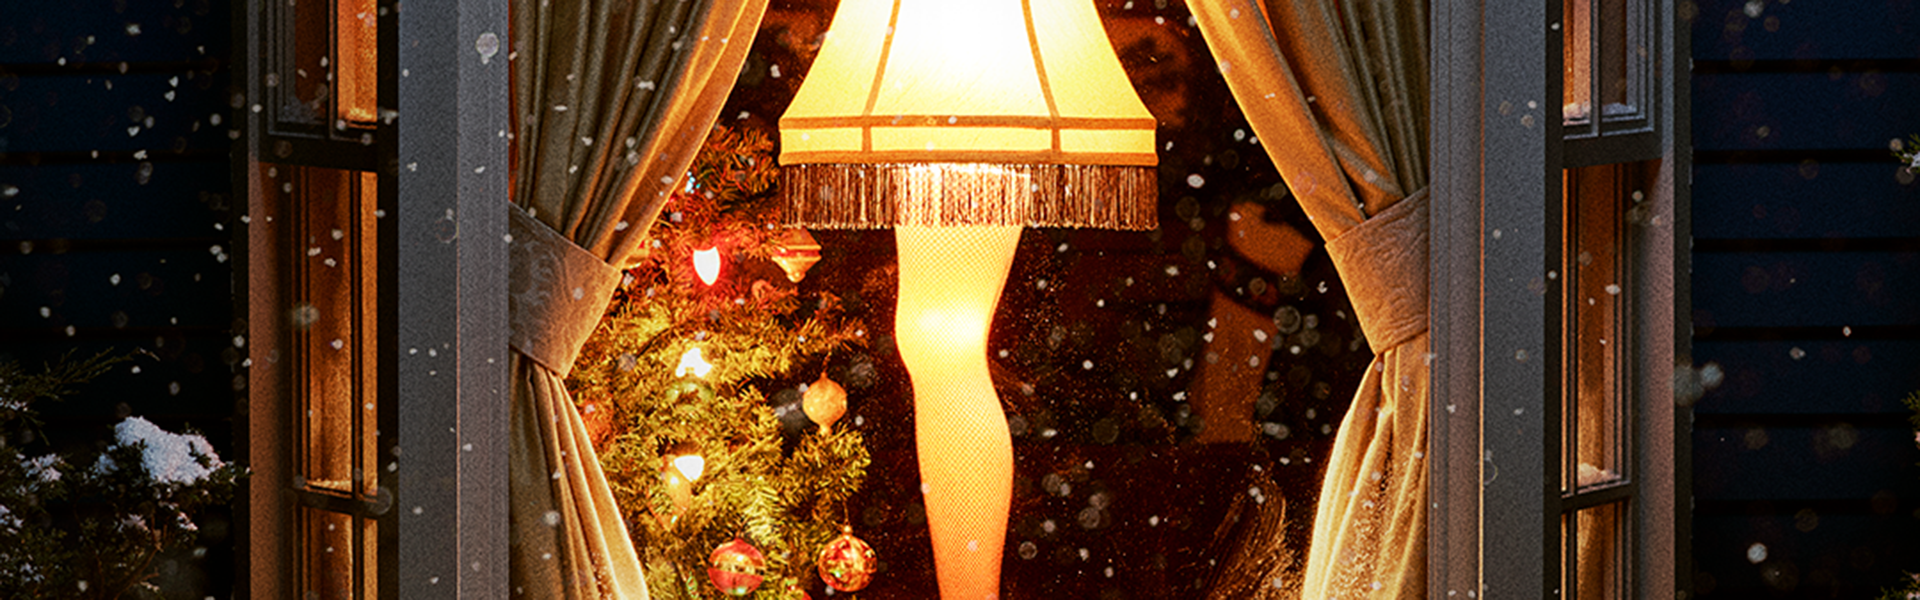 The Christmas Story Leg Lamp.Fox To Construct 20 Foot Leg Lamp For A Christmas Story